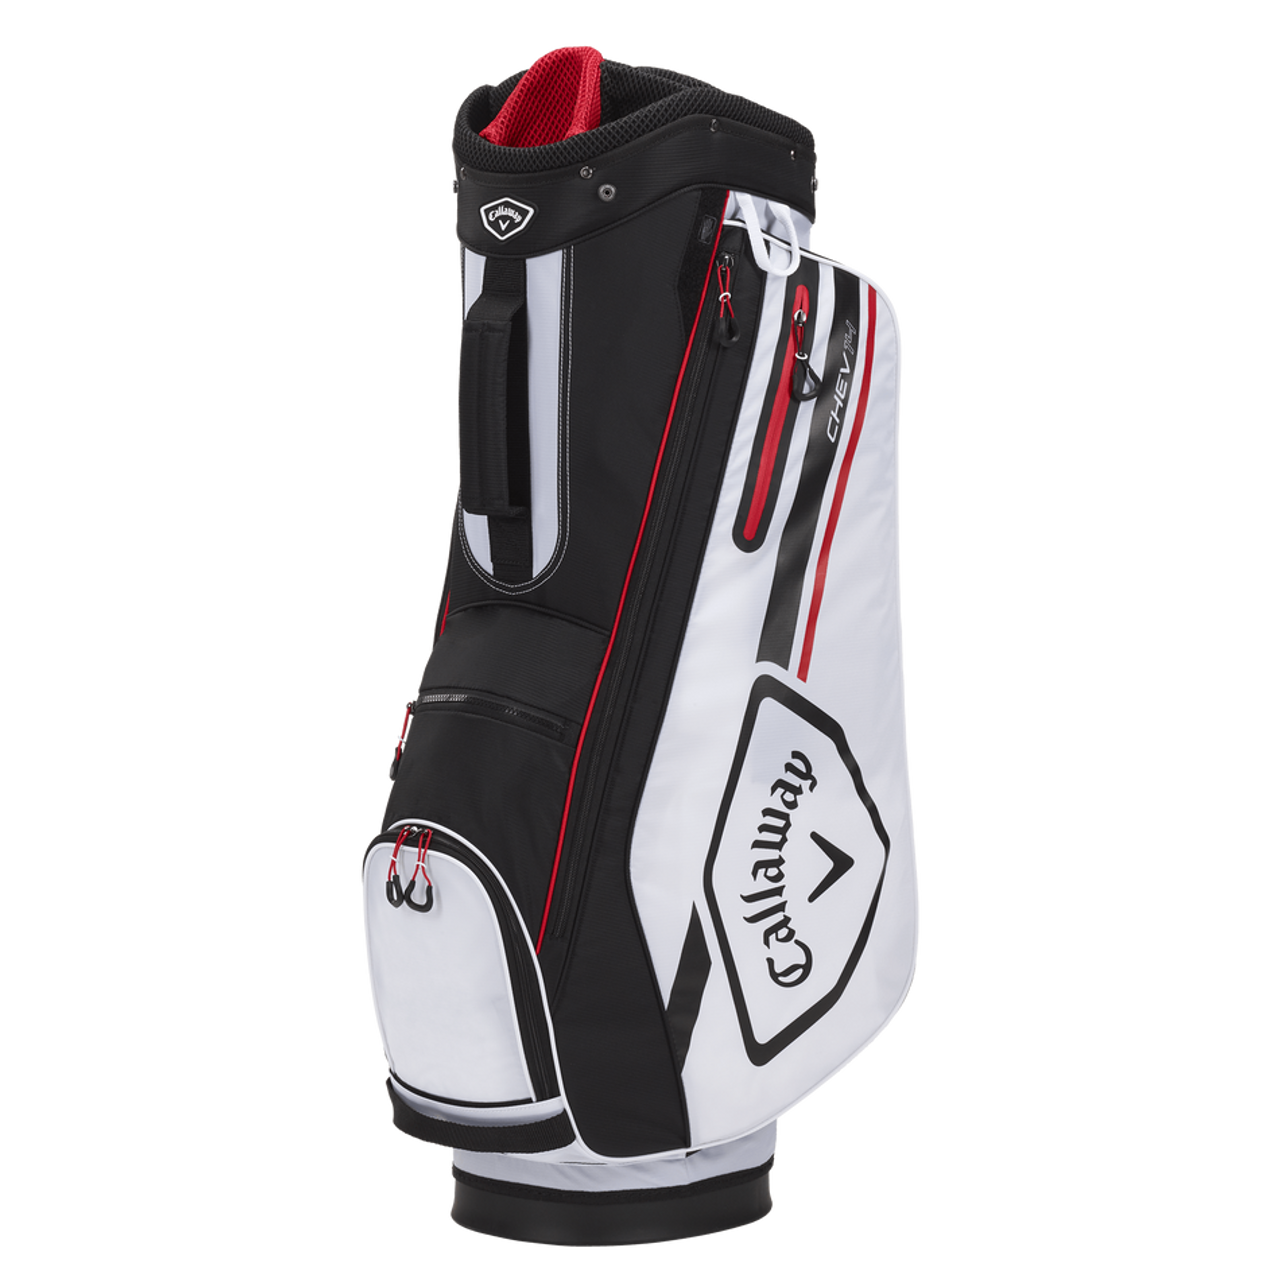 Callaway Chev 14 Cart Bag 2021 - White / Black / Fire